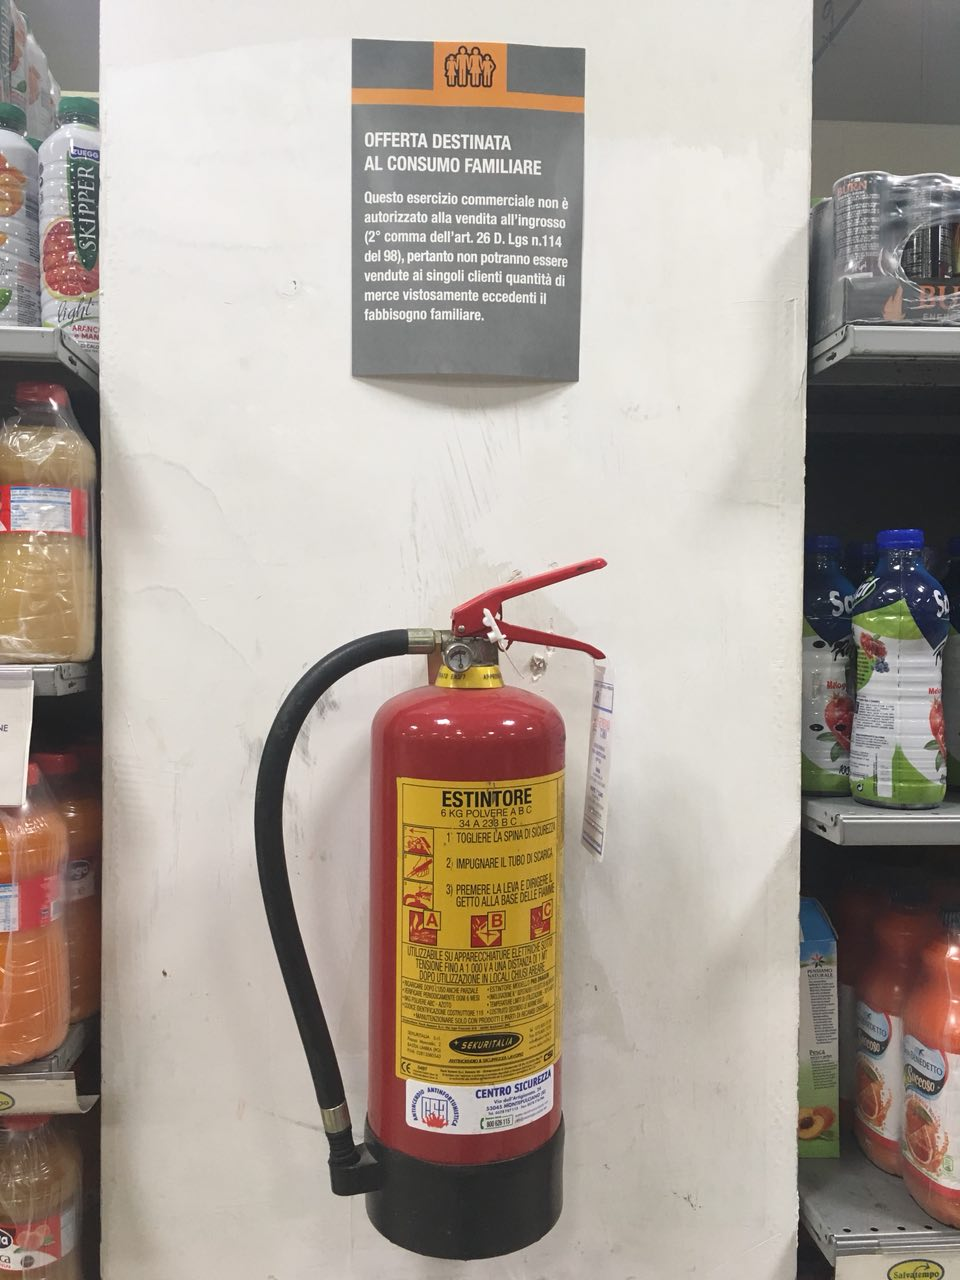 estintore in offerta, extinguisher deal, extinguisher offer